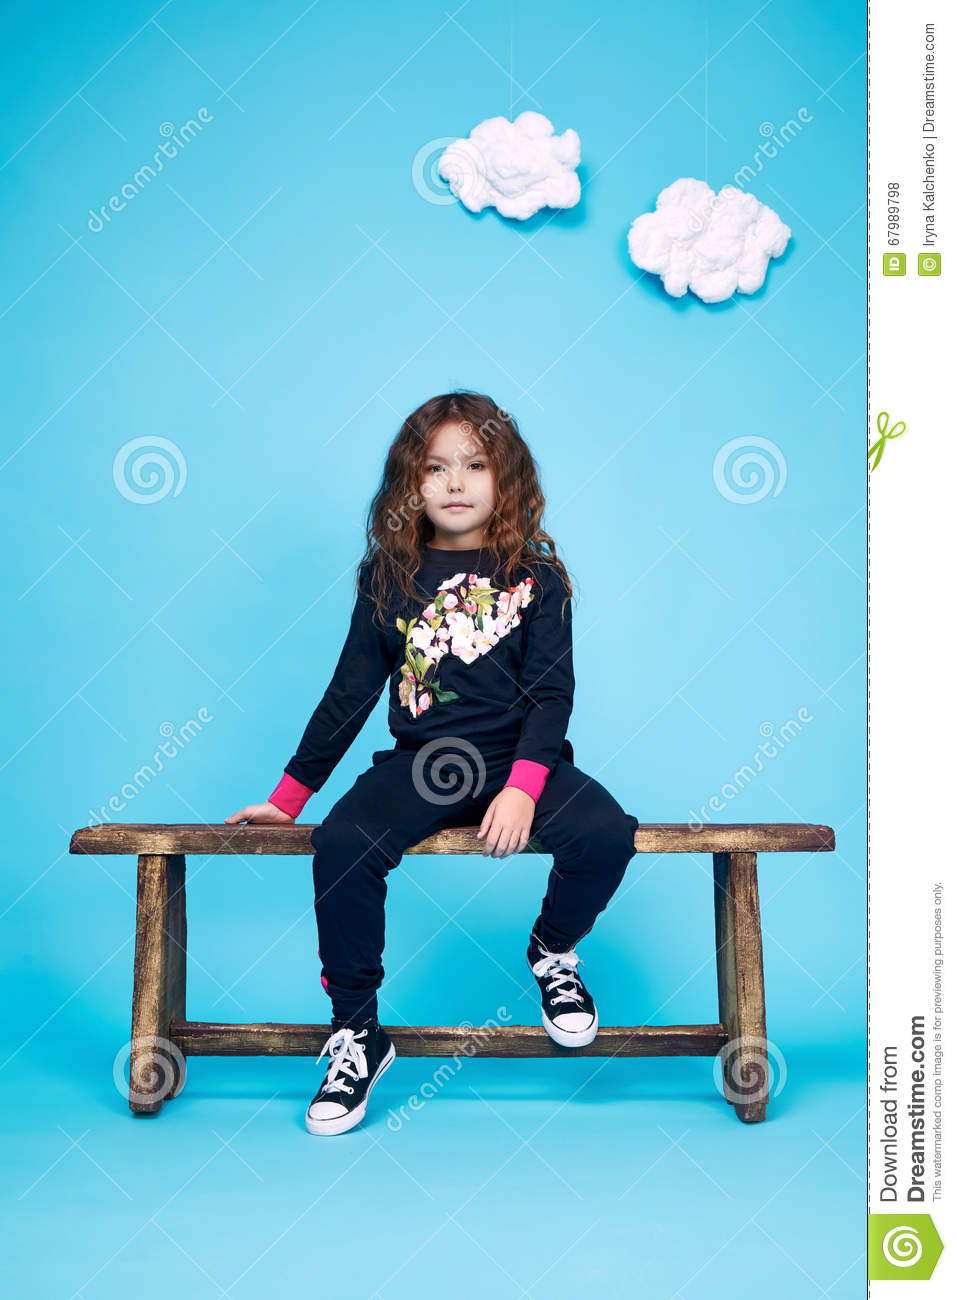 Dress Girl Clothing Small Collection Cute Stock Photo - Image of ...